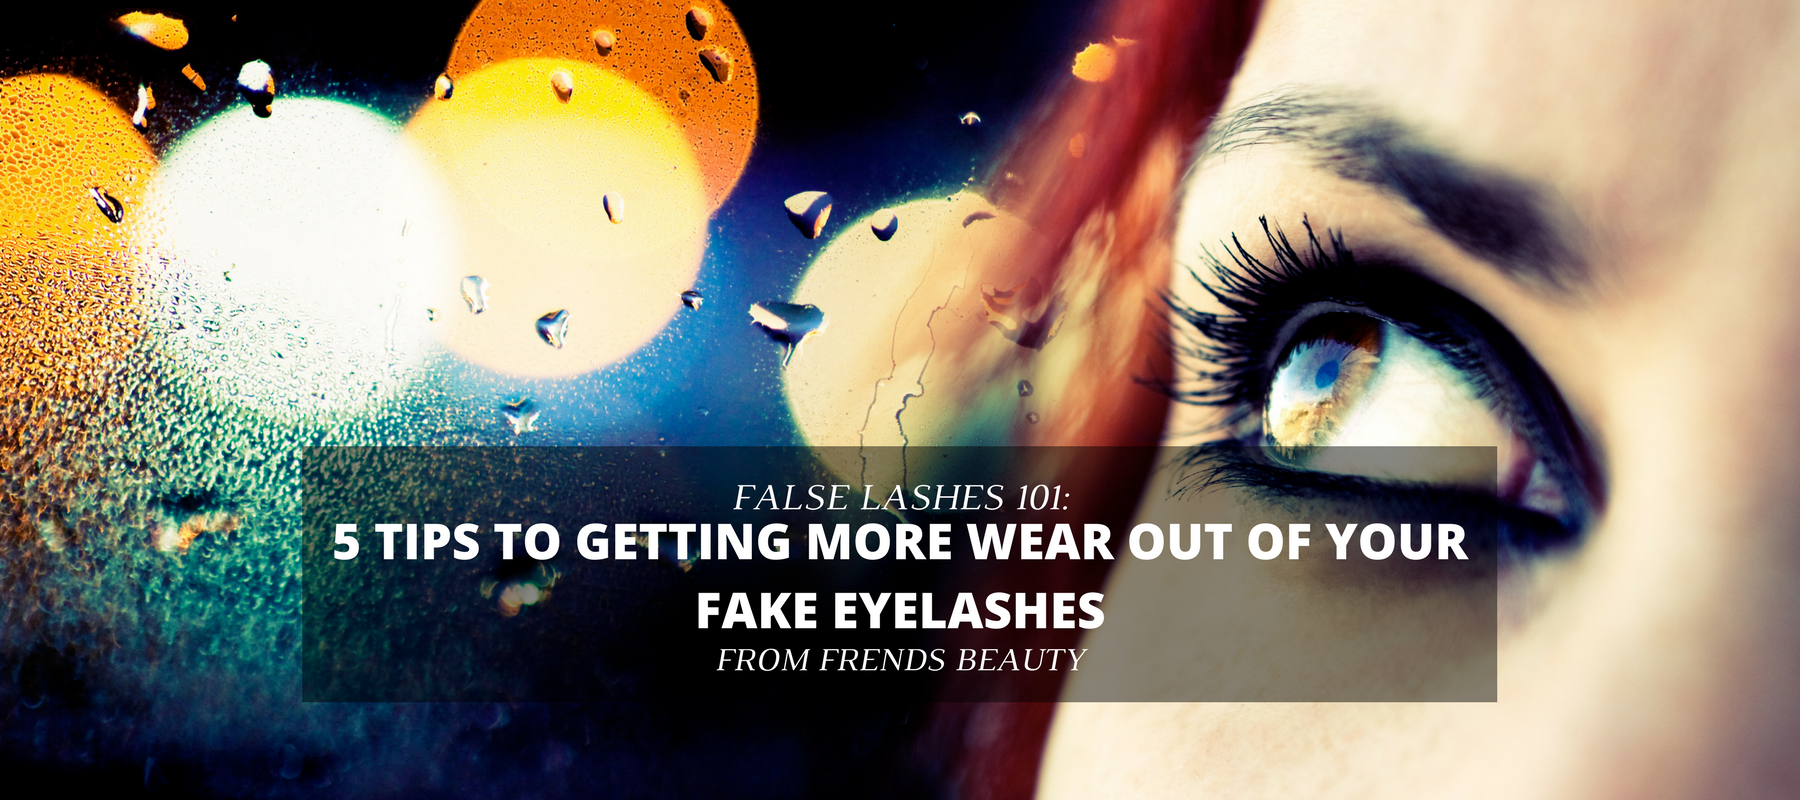 5 Tips To Getting More Wear Out Of Your Fake Eyelashes Frends